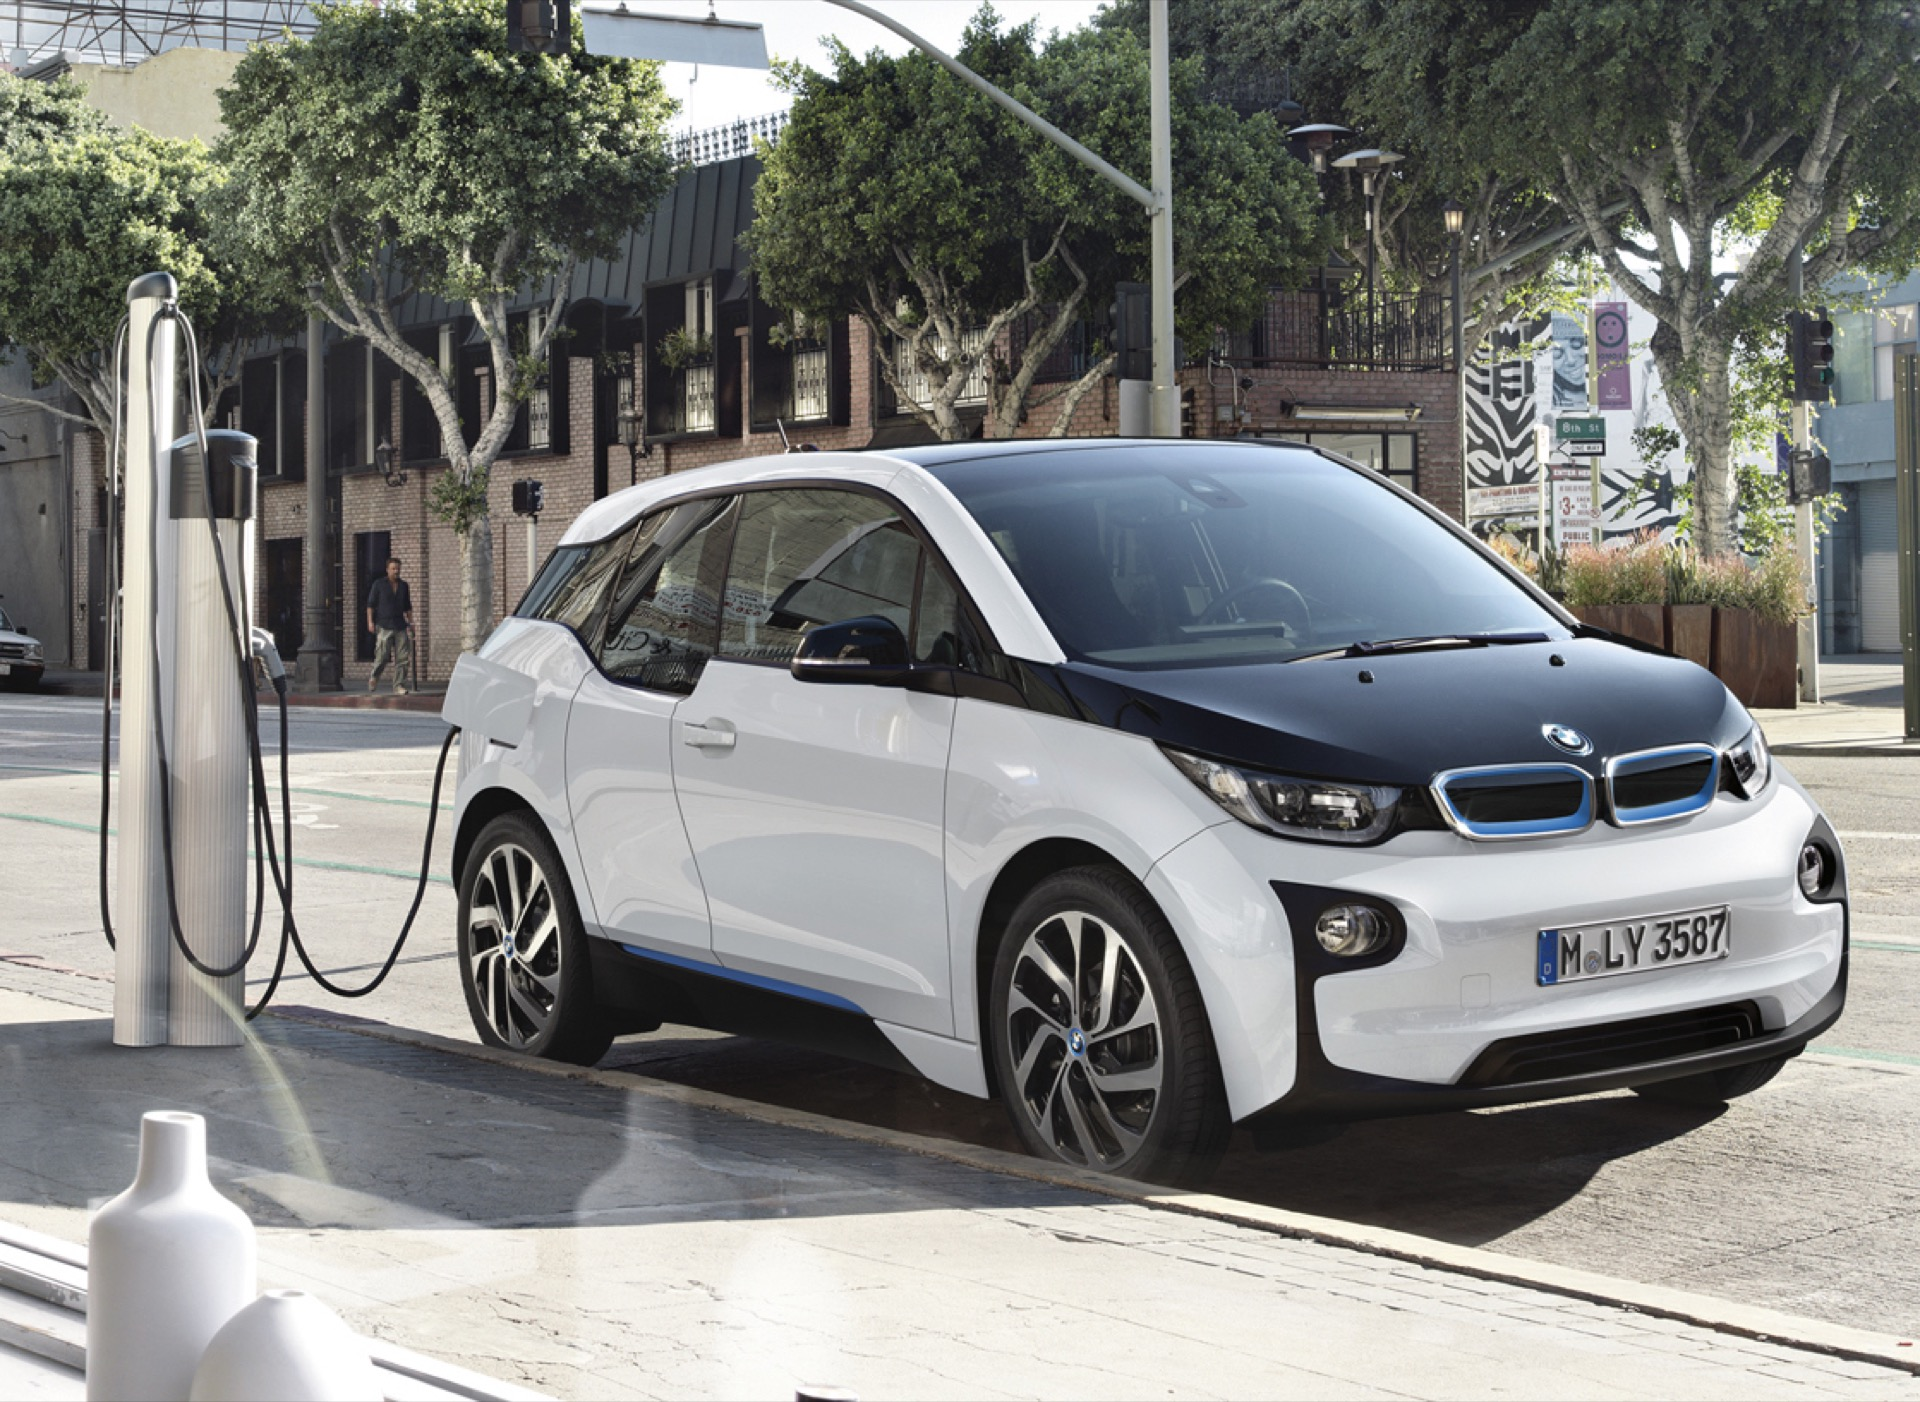 2017 Bmw I3 Preview Chager Baterai Bm 038